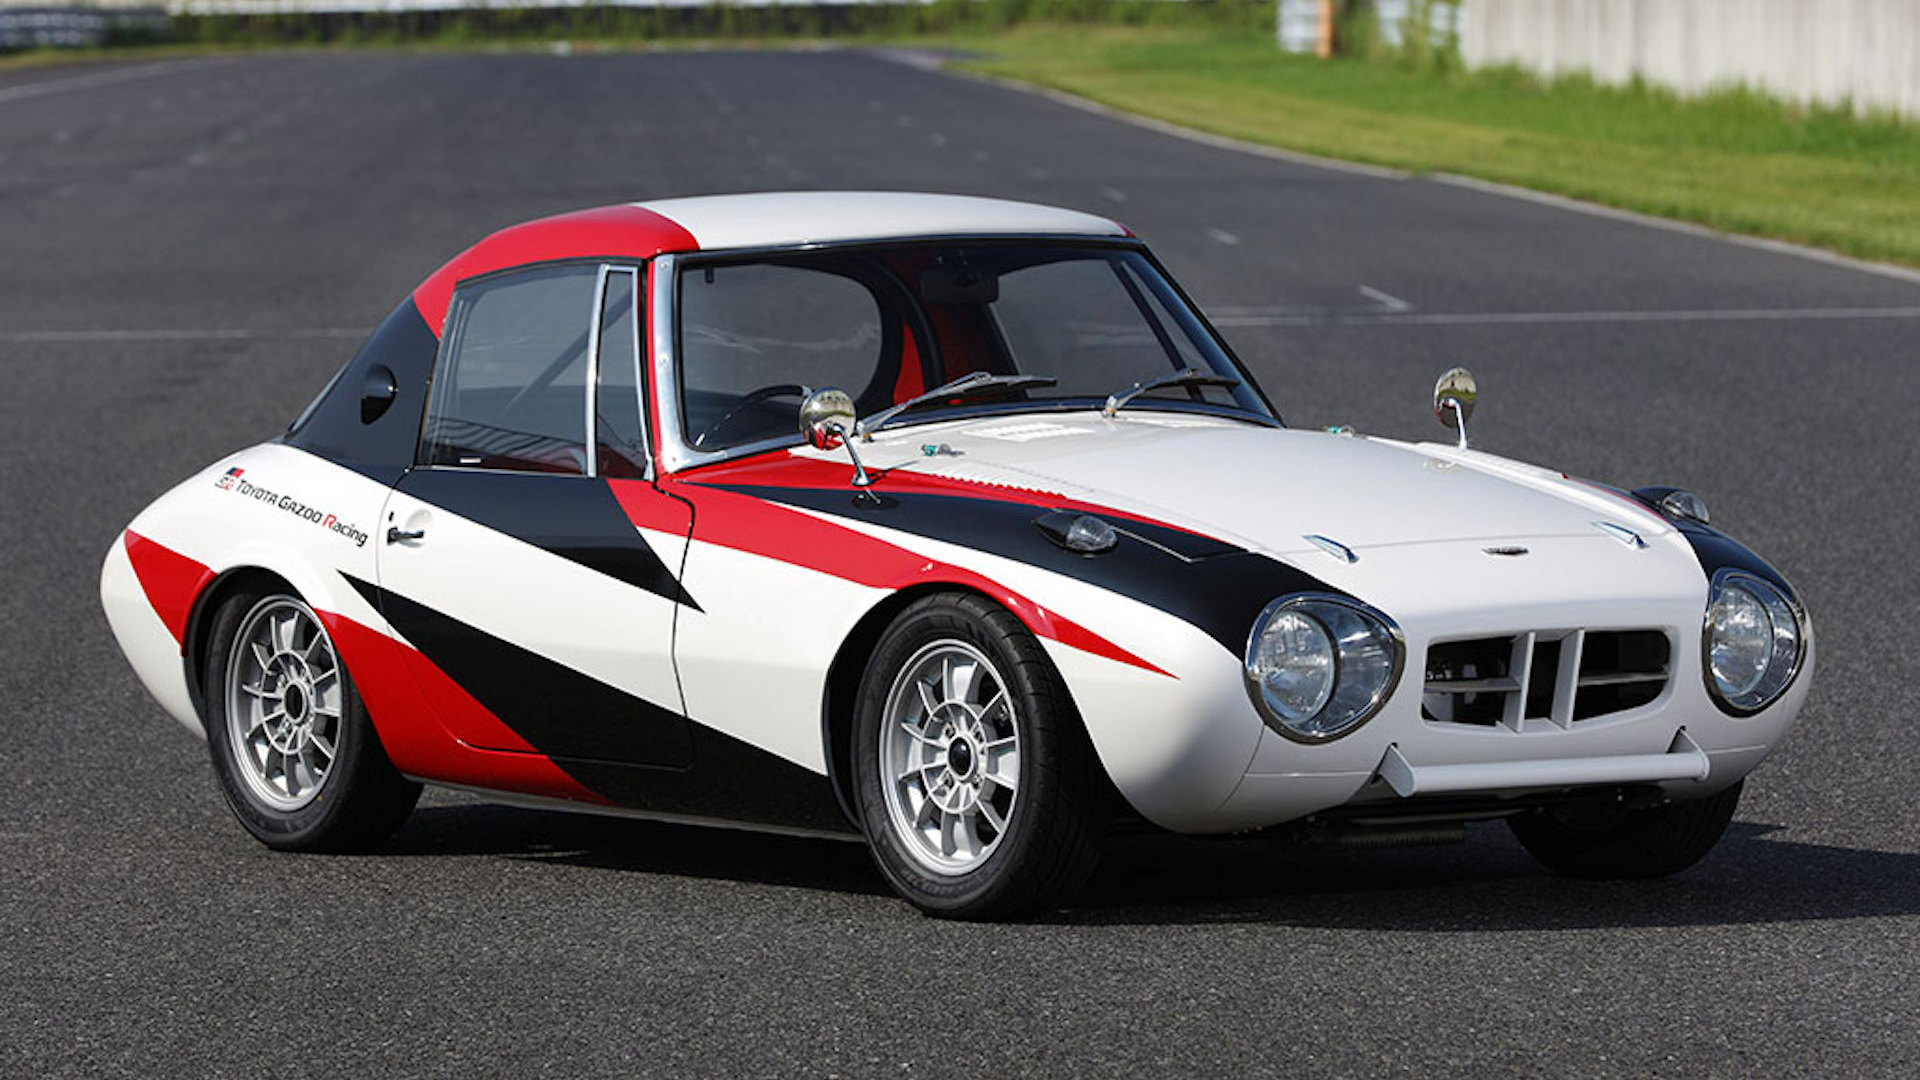 1966 Toyota Sports 800 restored by Gazoo Racing